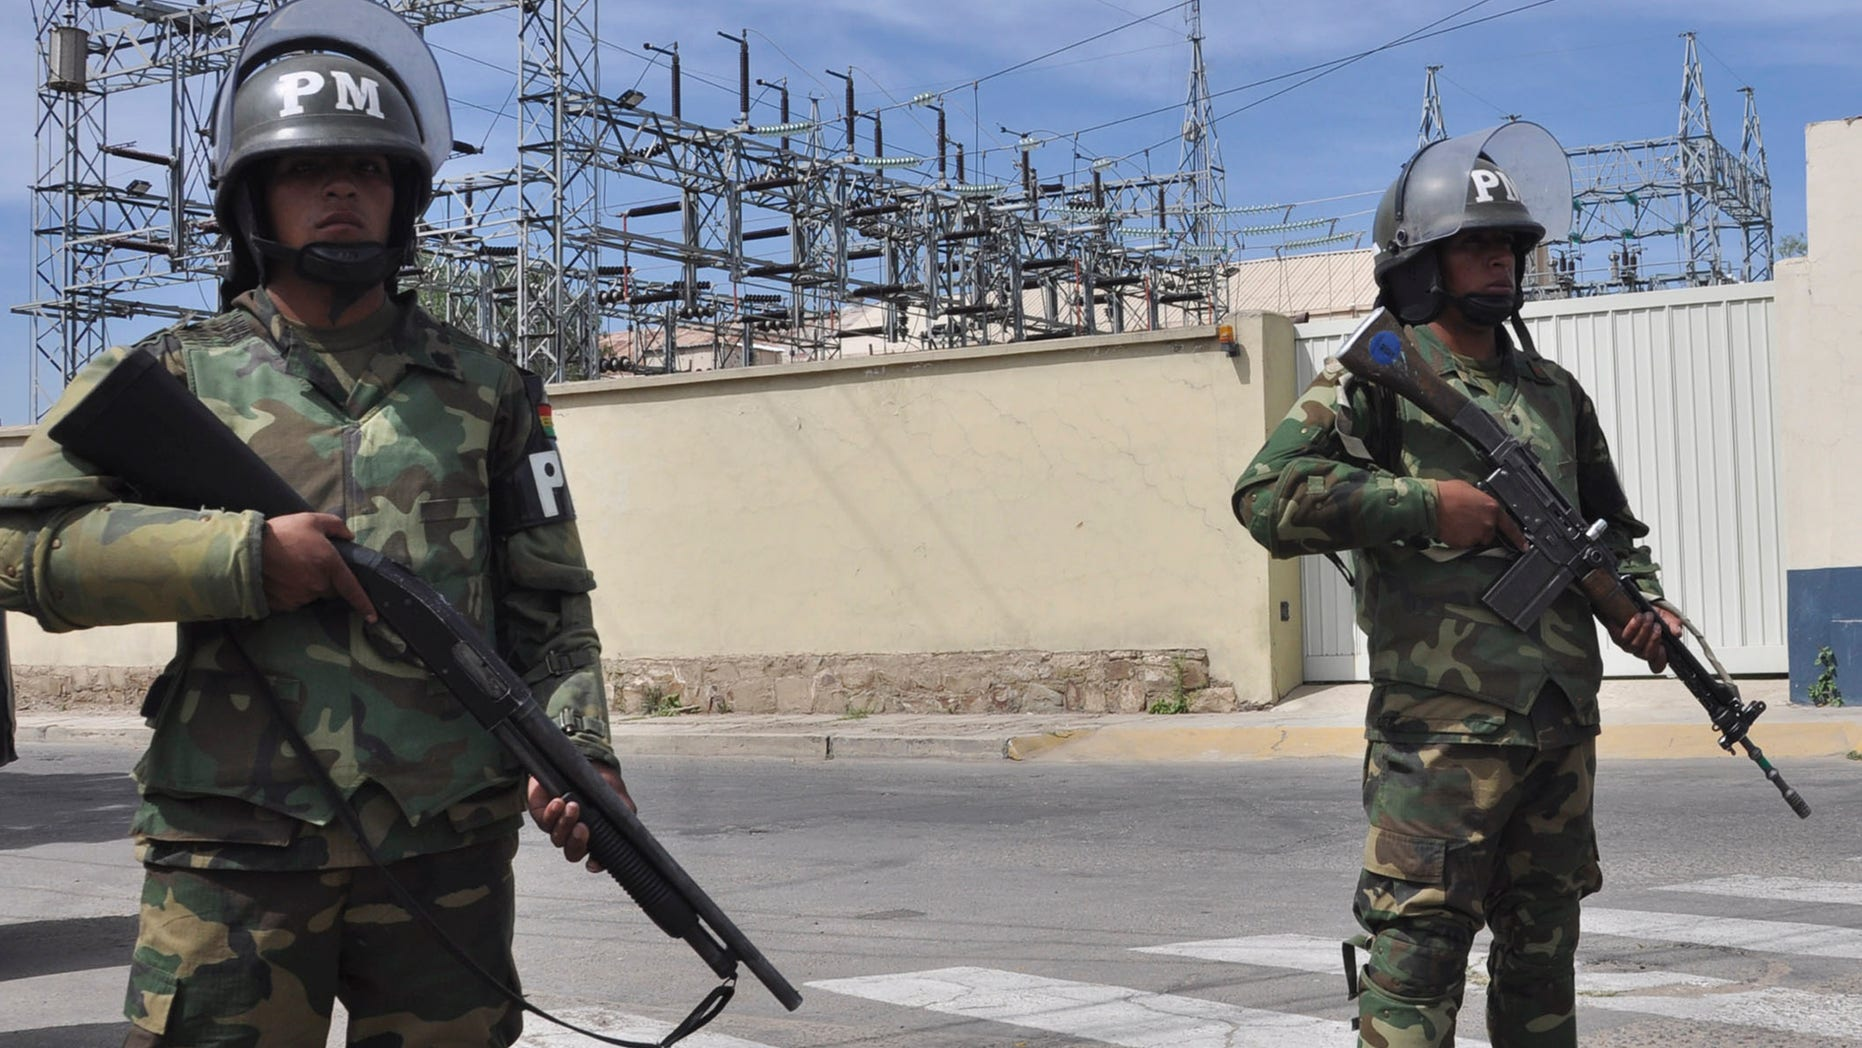 Military police stand guard outside Transportadora de Electricidad, the Spanish electricity grids Bolivian subsidiary, in Cochabamba, Bolivia, Tuesday, May 1, 2012. Bolivia's President Evo Morales says his government is completing the nationalization of the country's electricity industry by taking over its electrical grid from the Spanish-owned company, Red Electrica. (AP Photo)